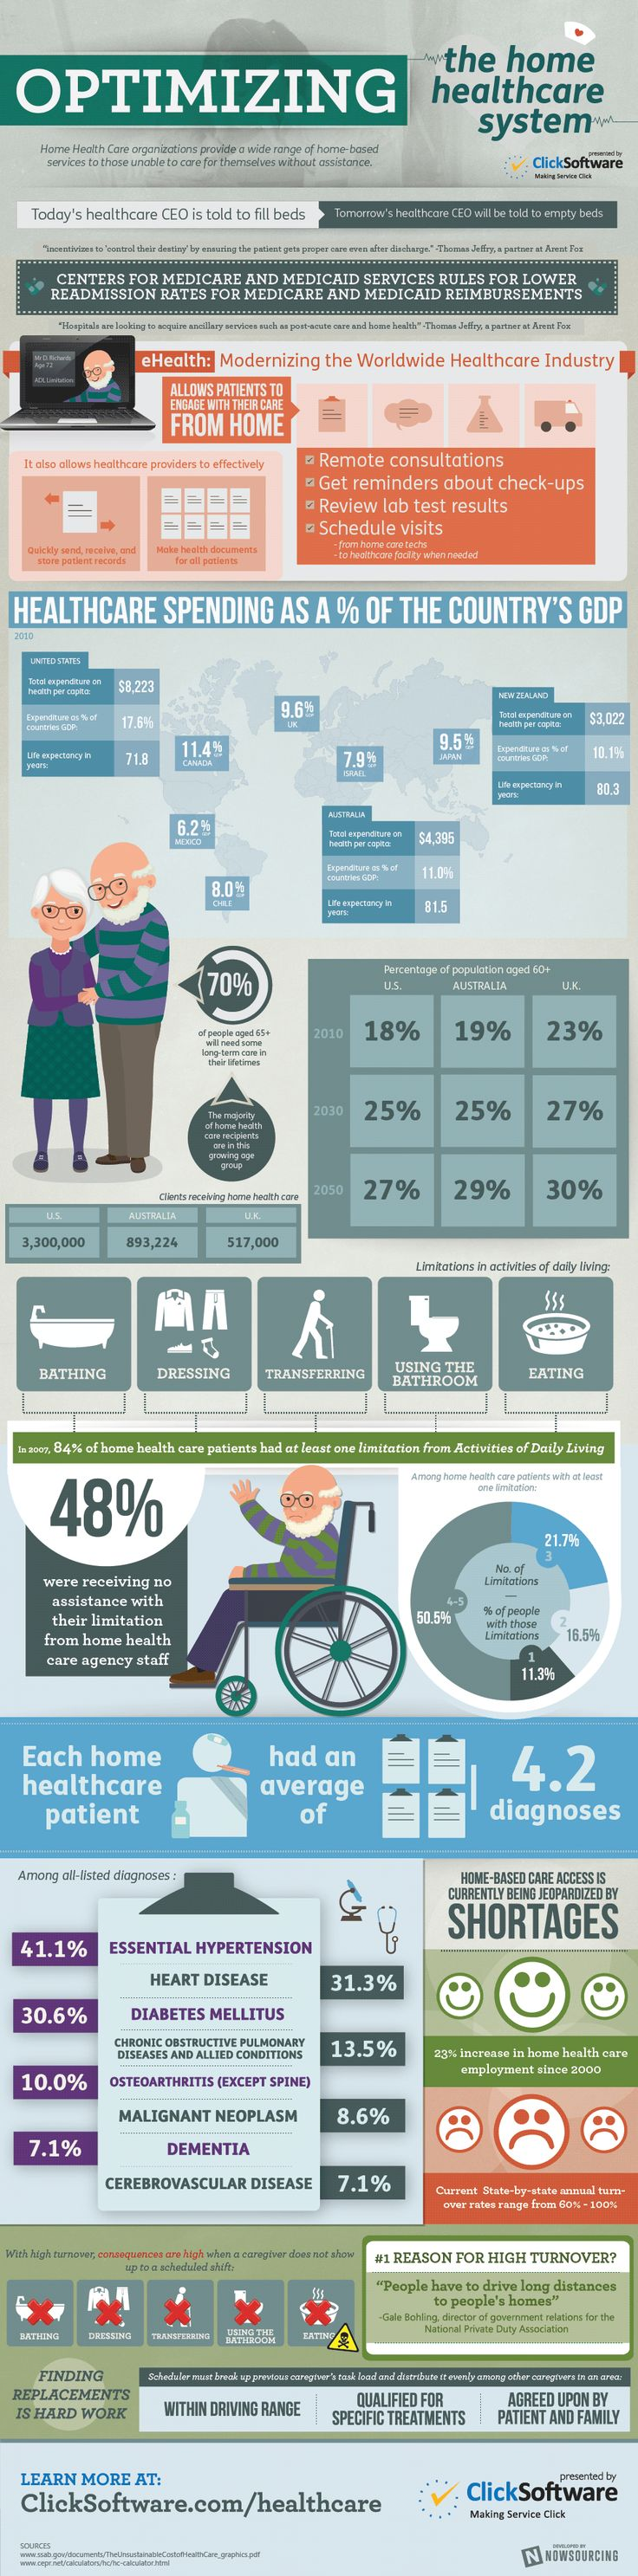 Optimizing the home healthcare system (ClickSoftware)